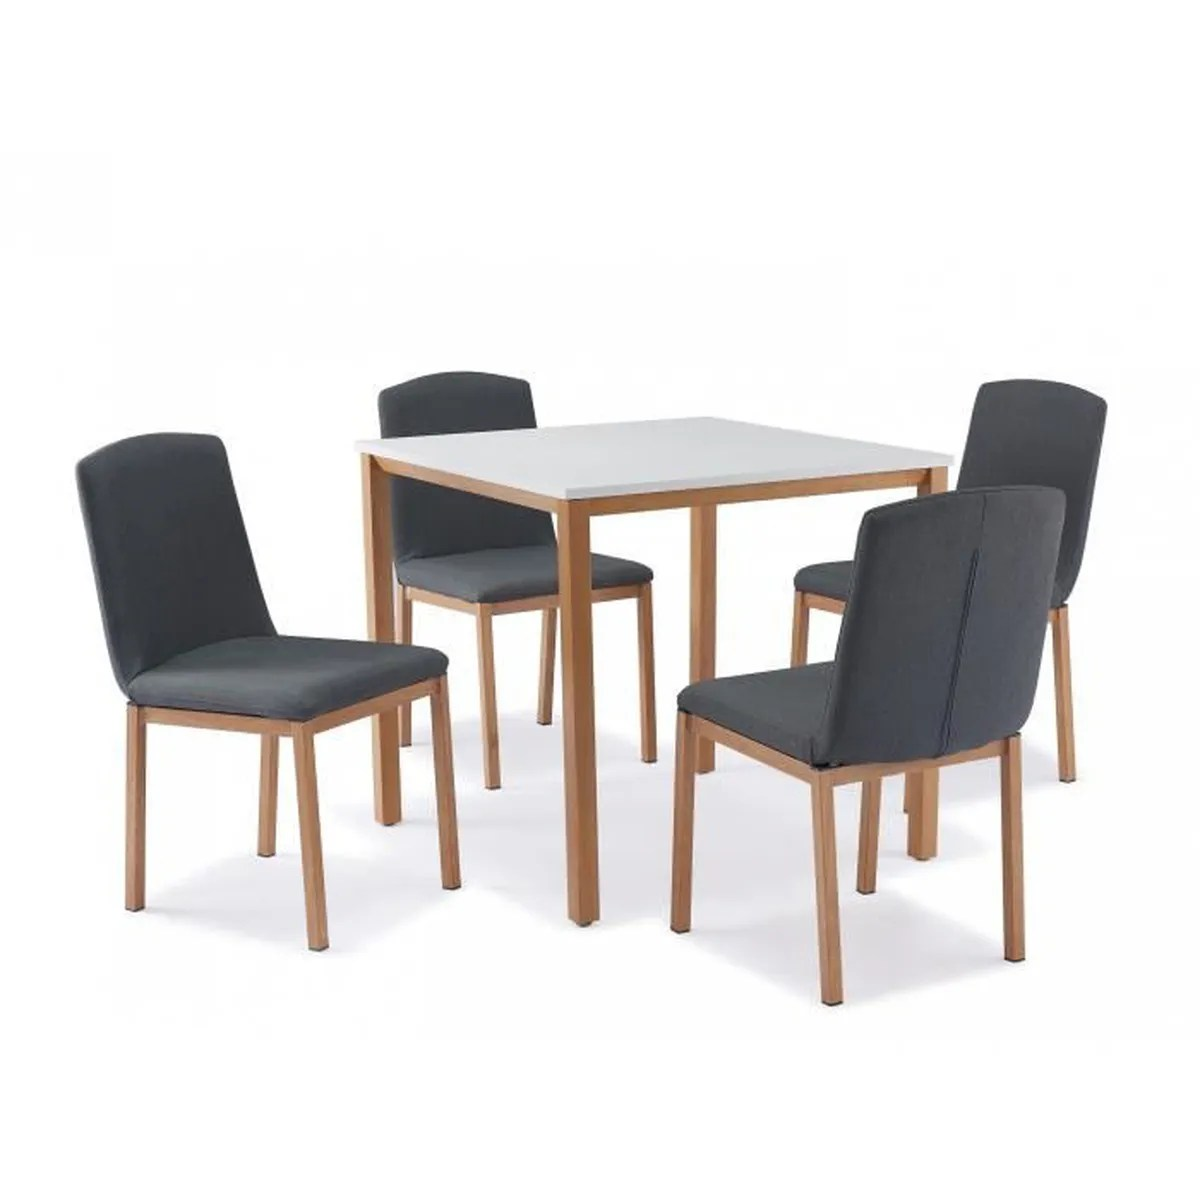 Table Et Chaise En Pin 95 Table Et Chaise Table Et 4 Chaises Pin Massif Naturel Tosca